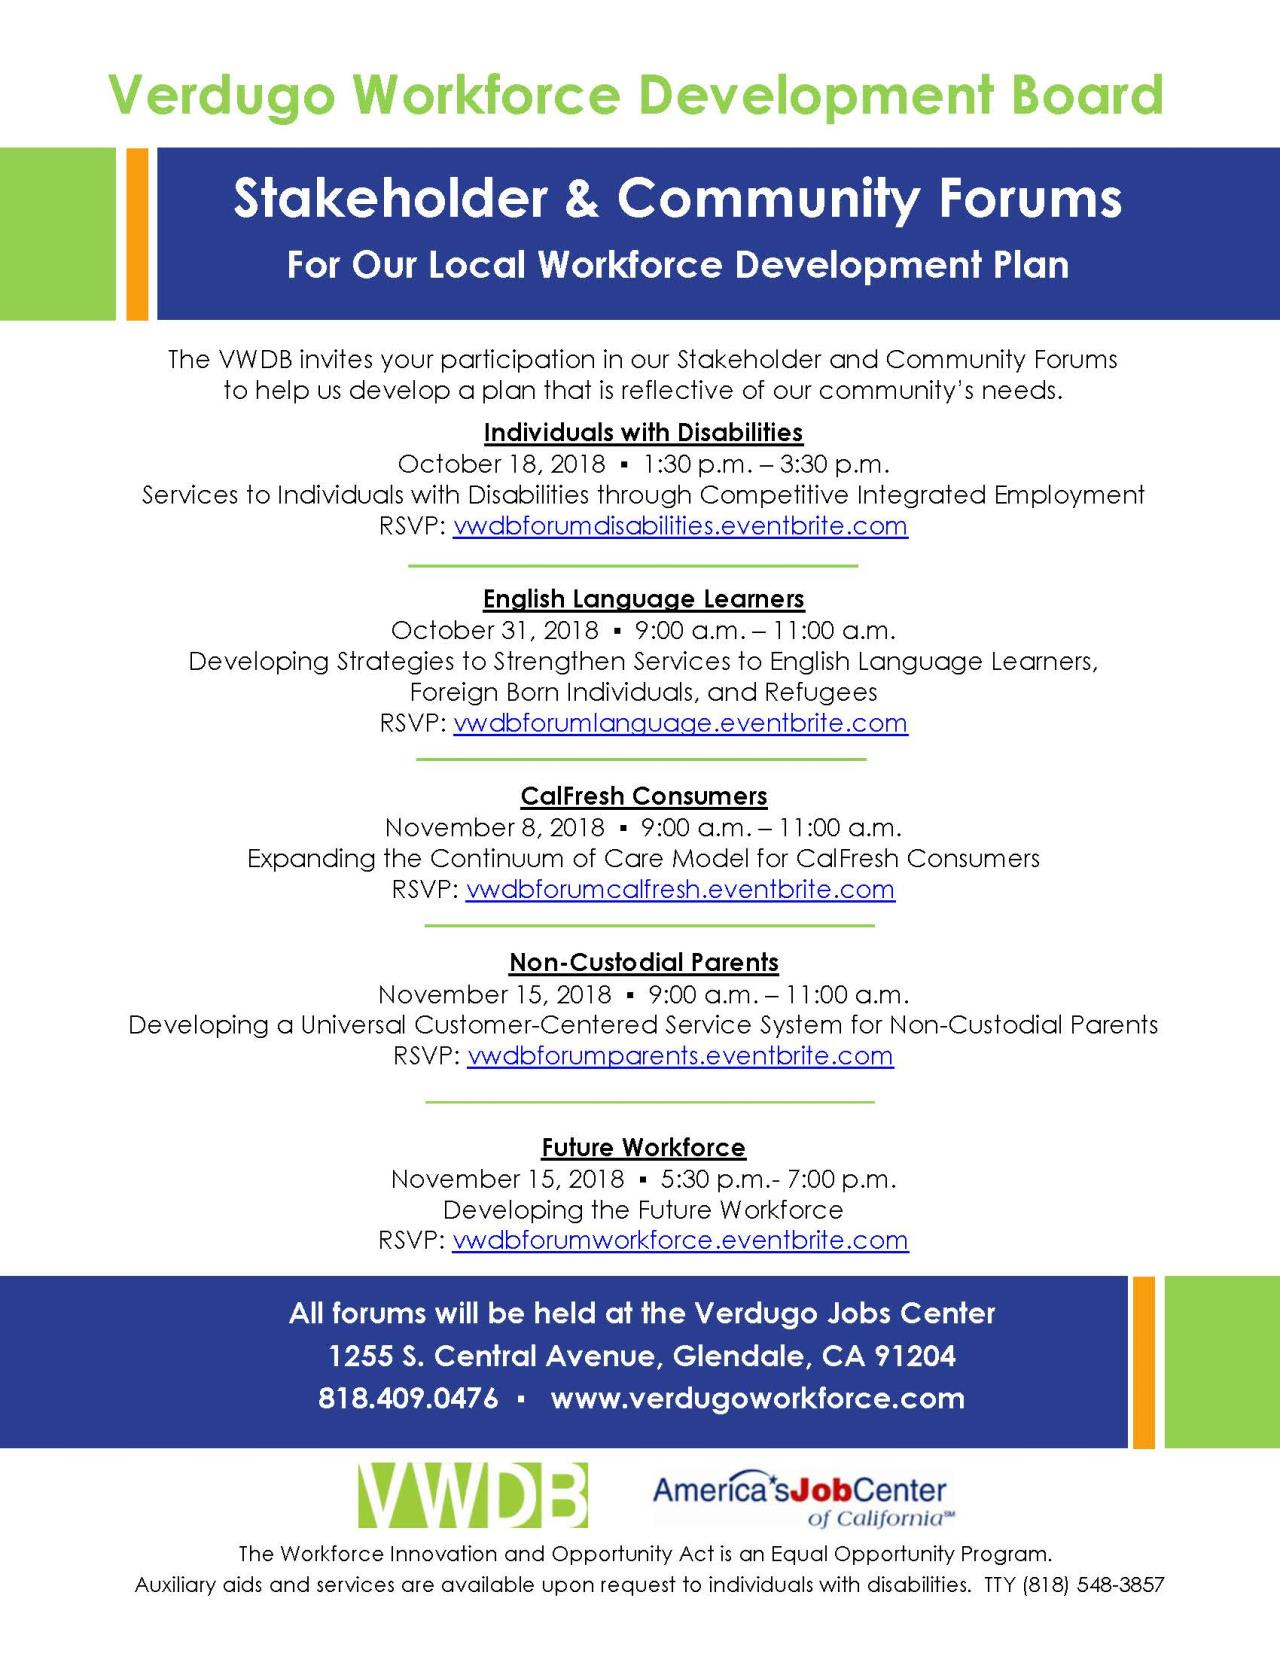 VWDB Formal Stakeholder Forums Flyer FINAL